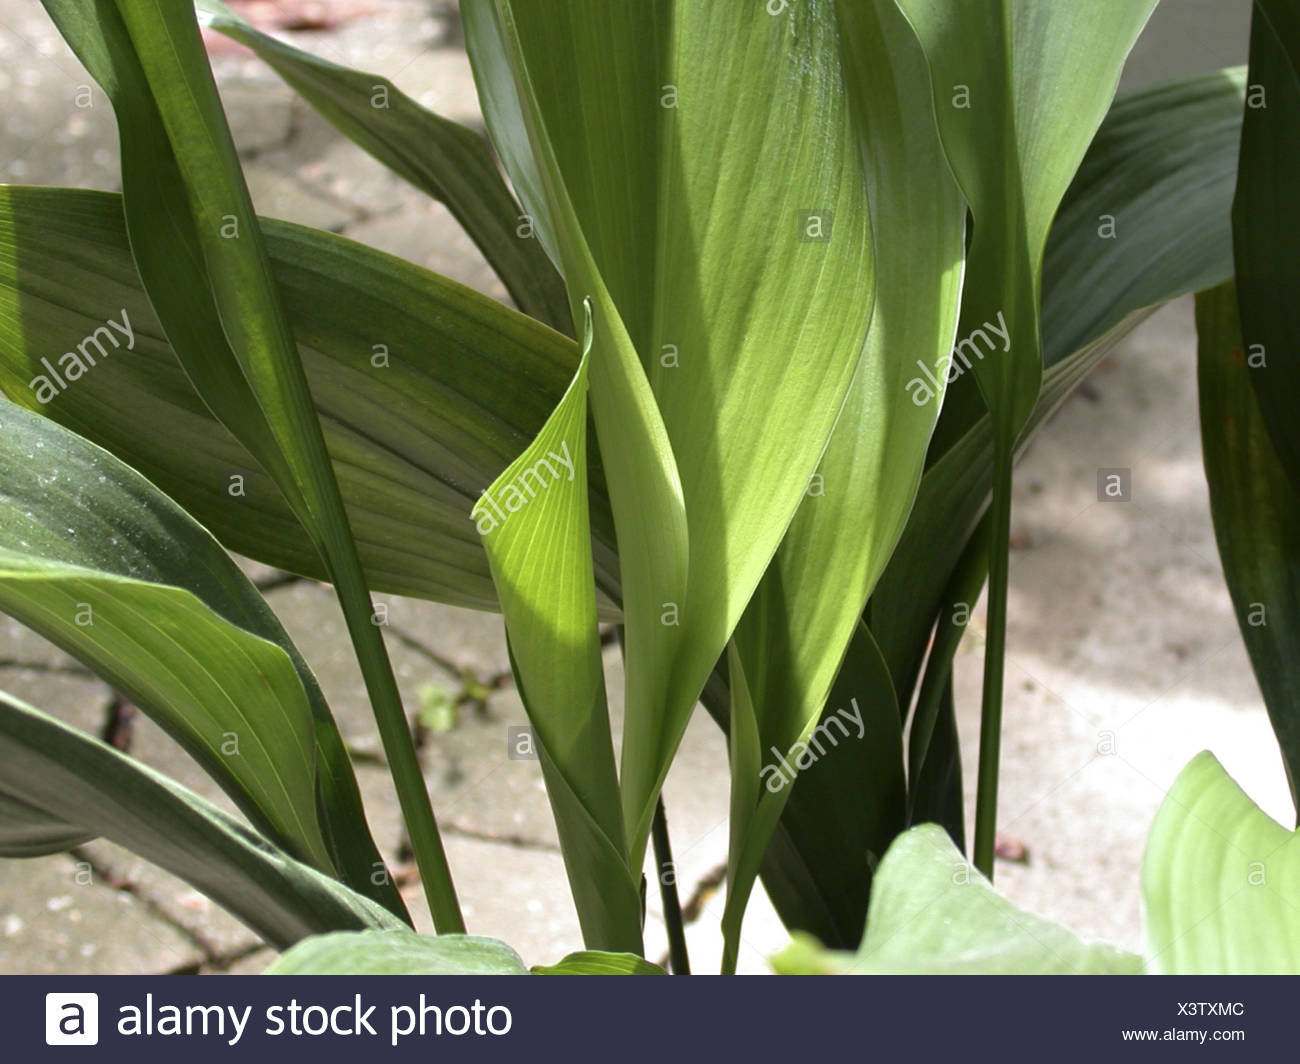 cast iron plant (Aspidistra elatior), potted plant Stock Photo